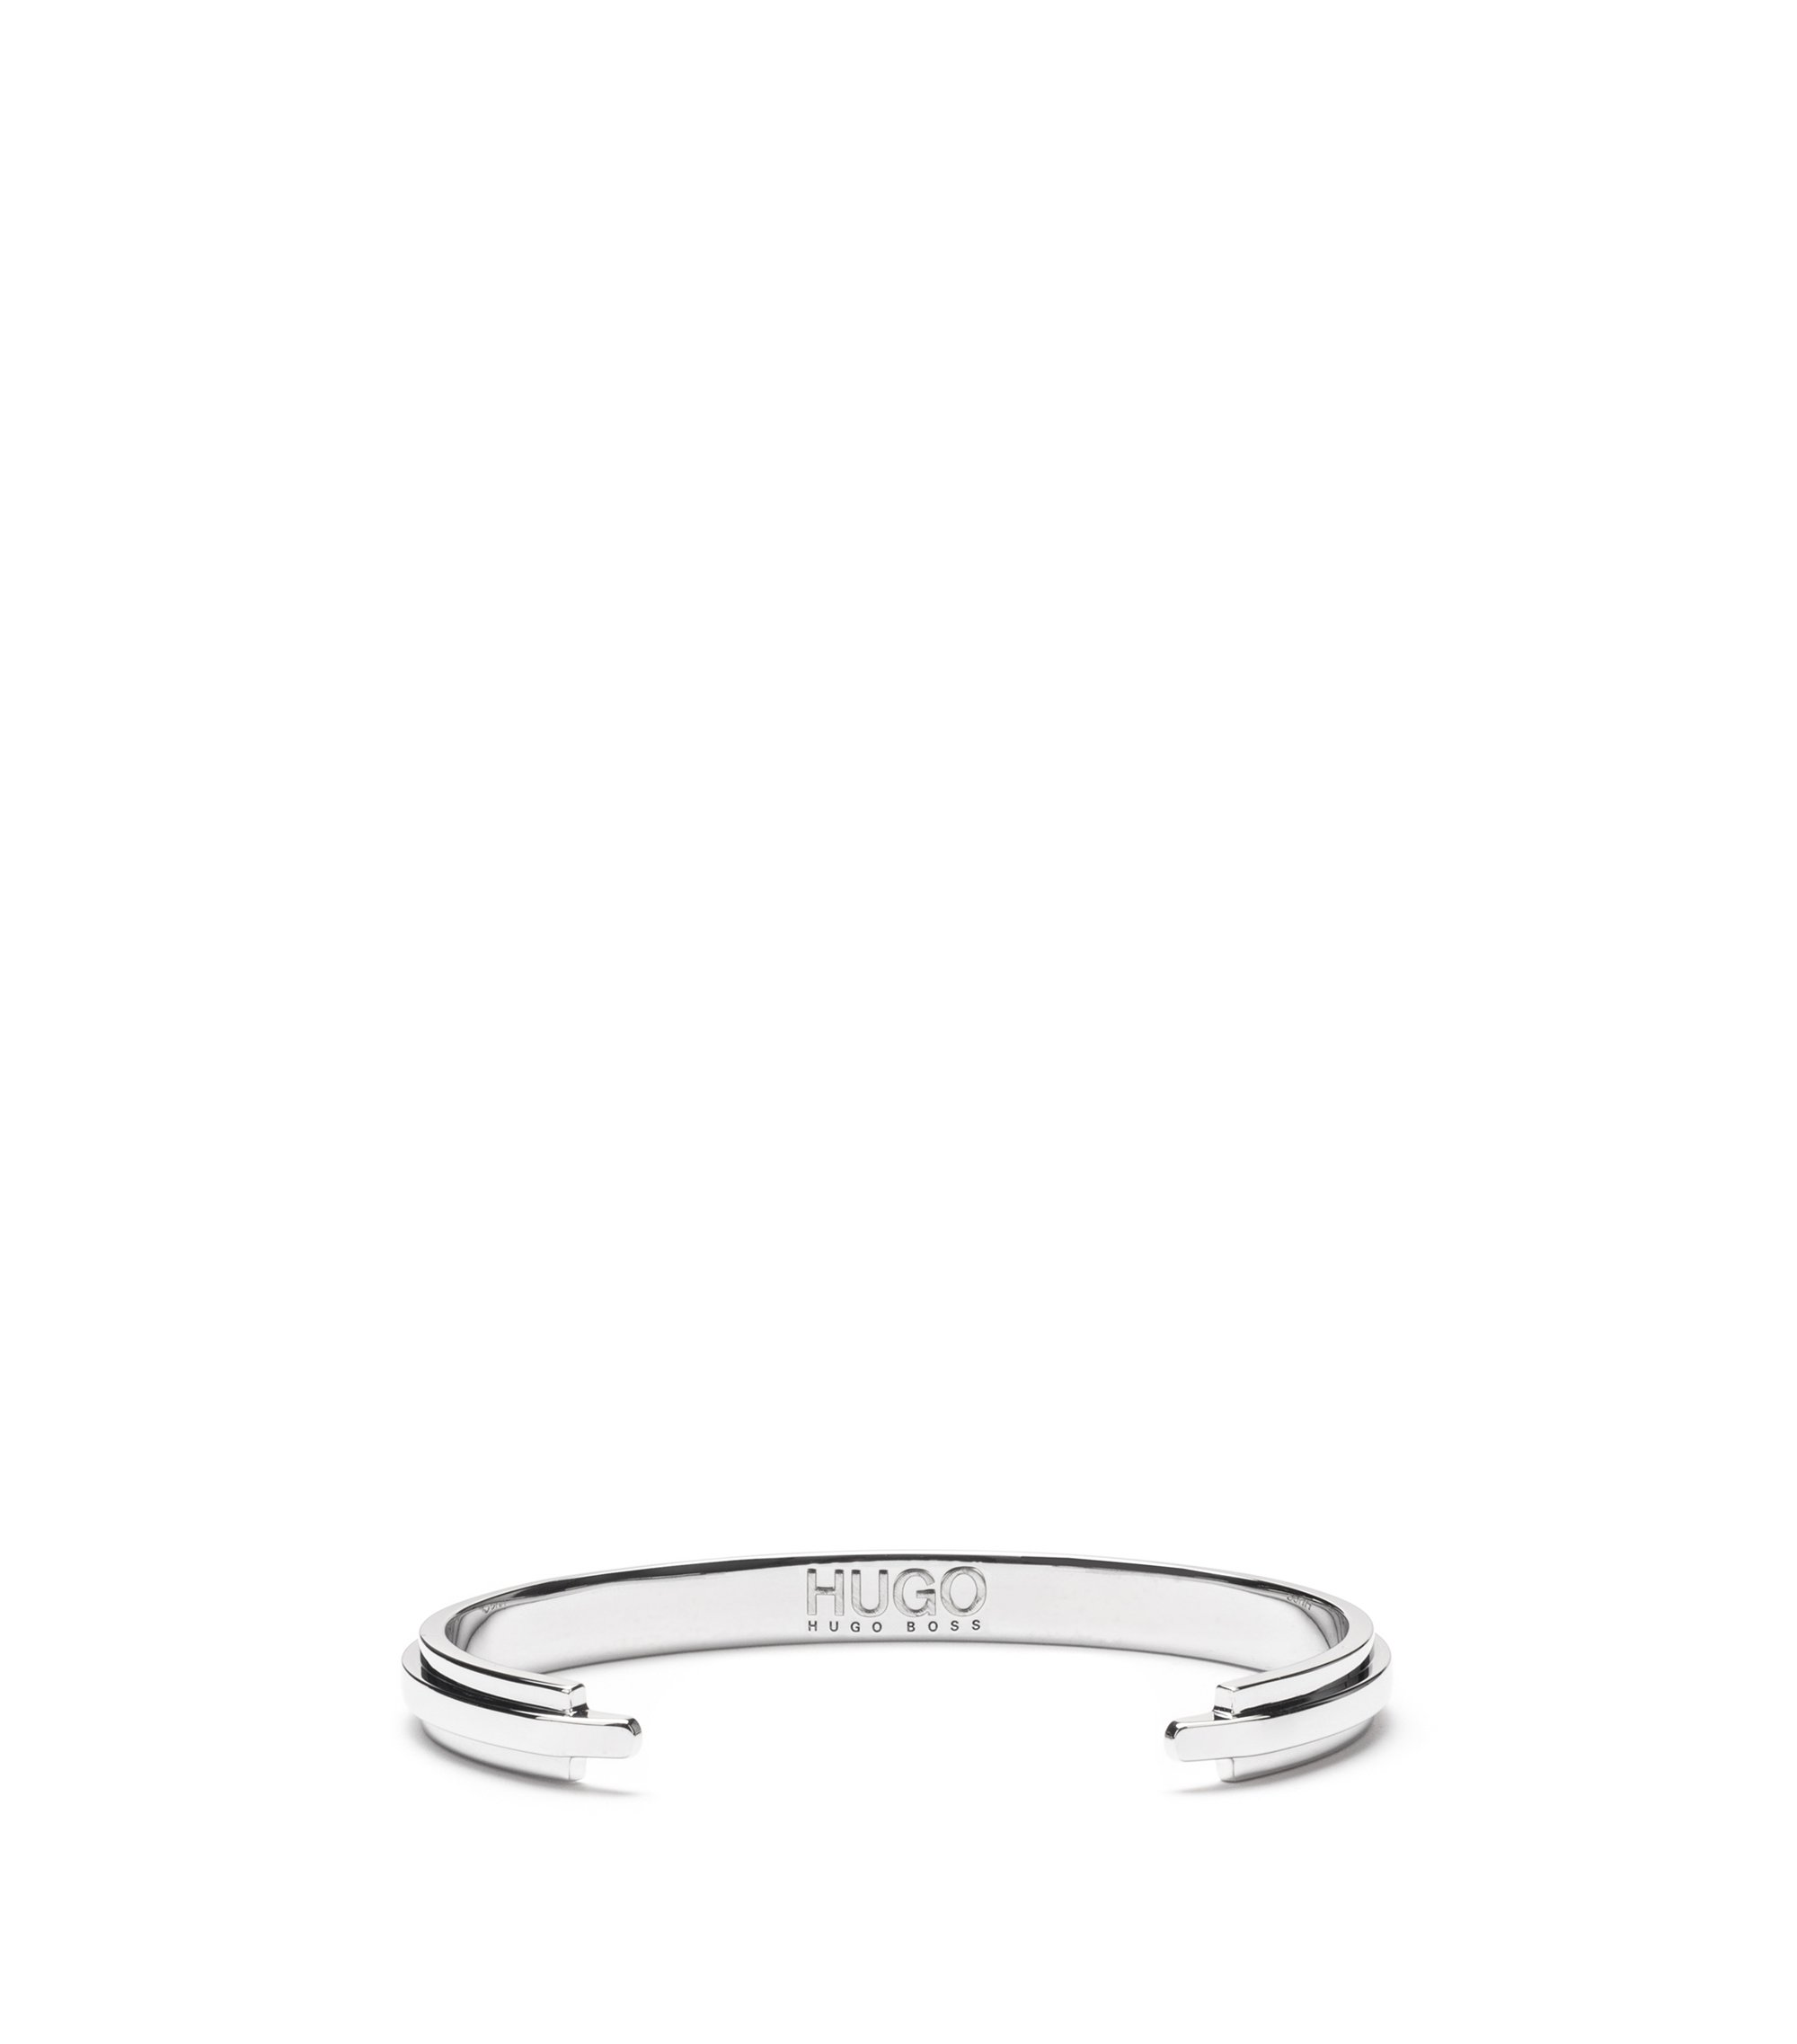 Modern polished metal bangle with engraved logo, Silver